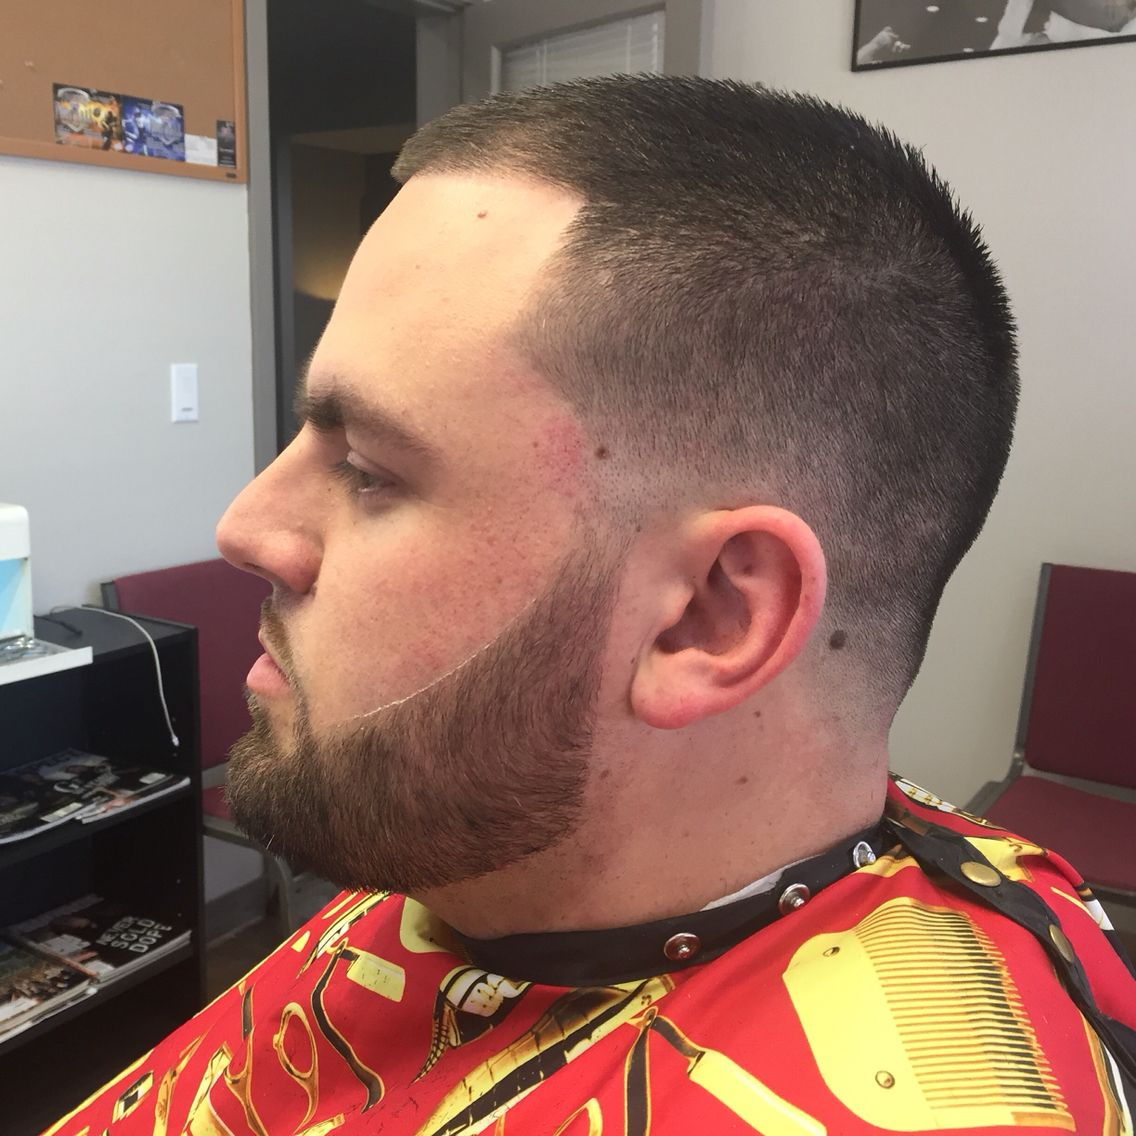 Lowbald Fade With A Beard Trim And S Haircut Stylei Am A